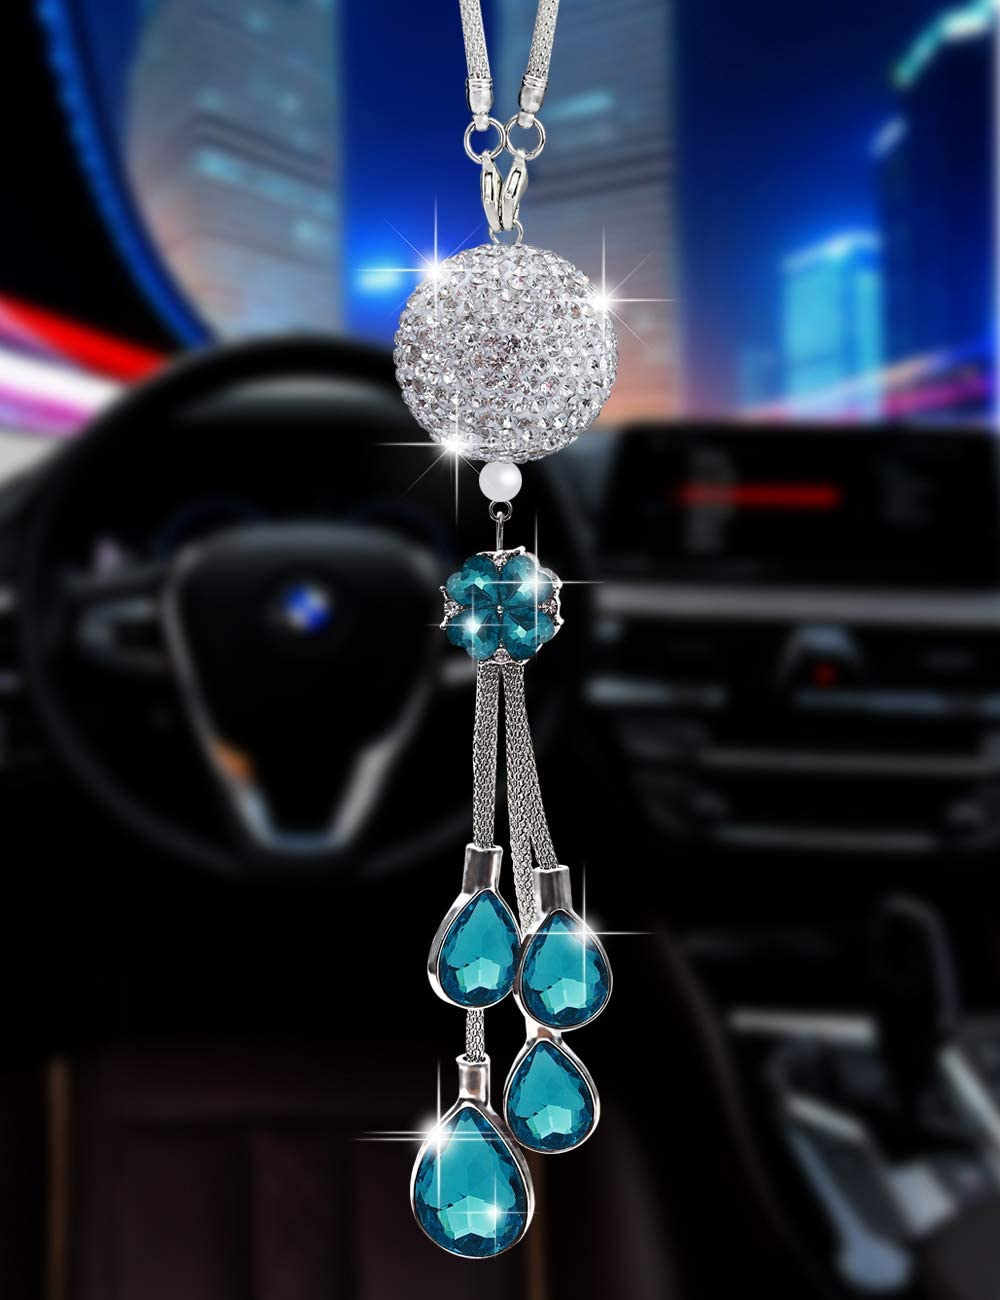 30 mm Clear Light Blue Bling Car Ornament Clear Hanging Crystal Ball Prism Crystals,Lucky Crystal Sun Catcher Ornament,Rear View Mirror Flower Charm Decor Design Pendant Bling Car Accessories